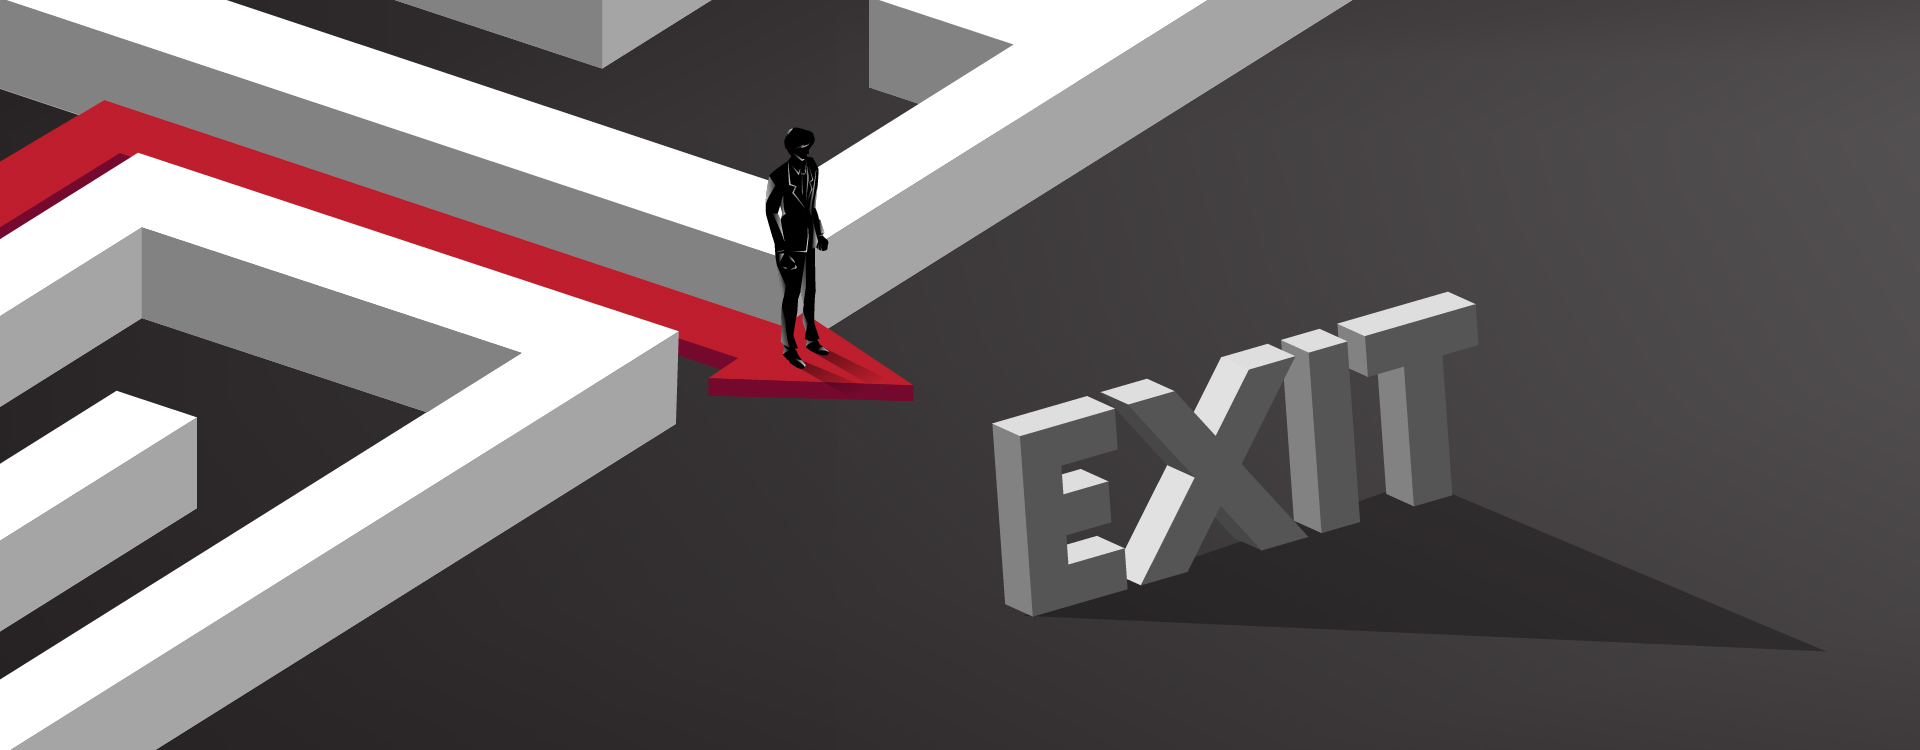 Make Exit by Liquidation: How Business Exit can be Rewarding?